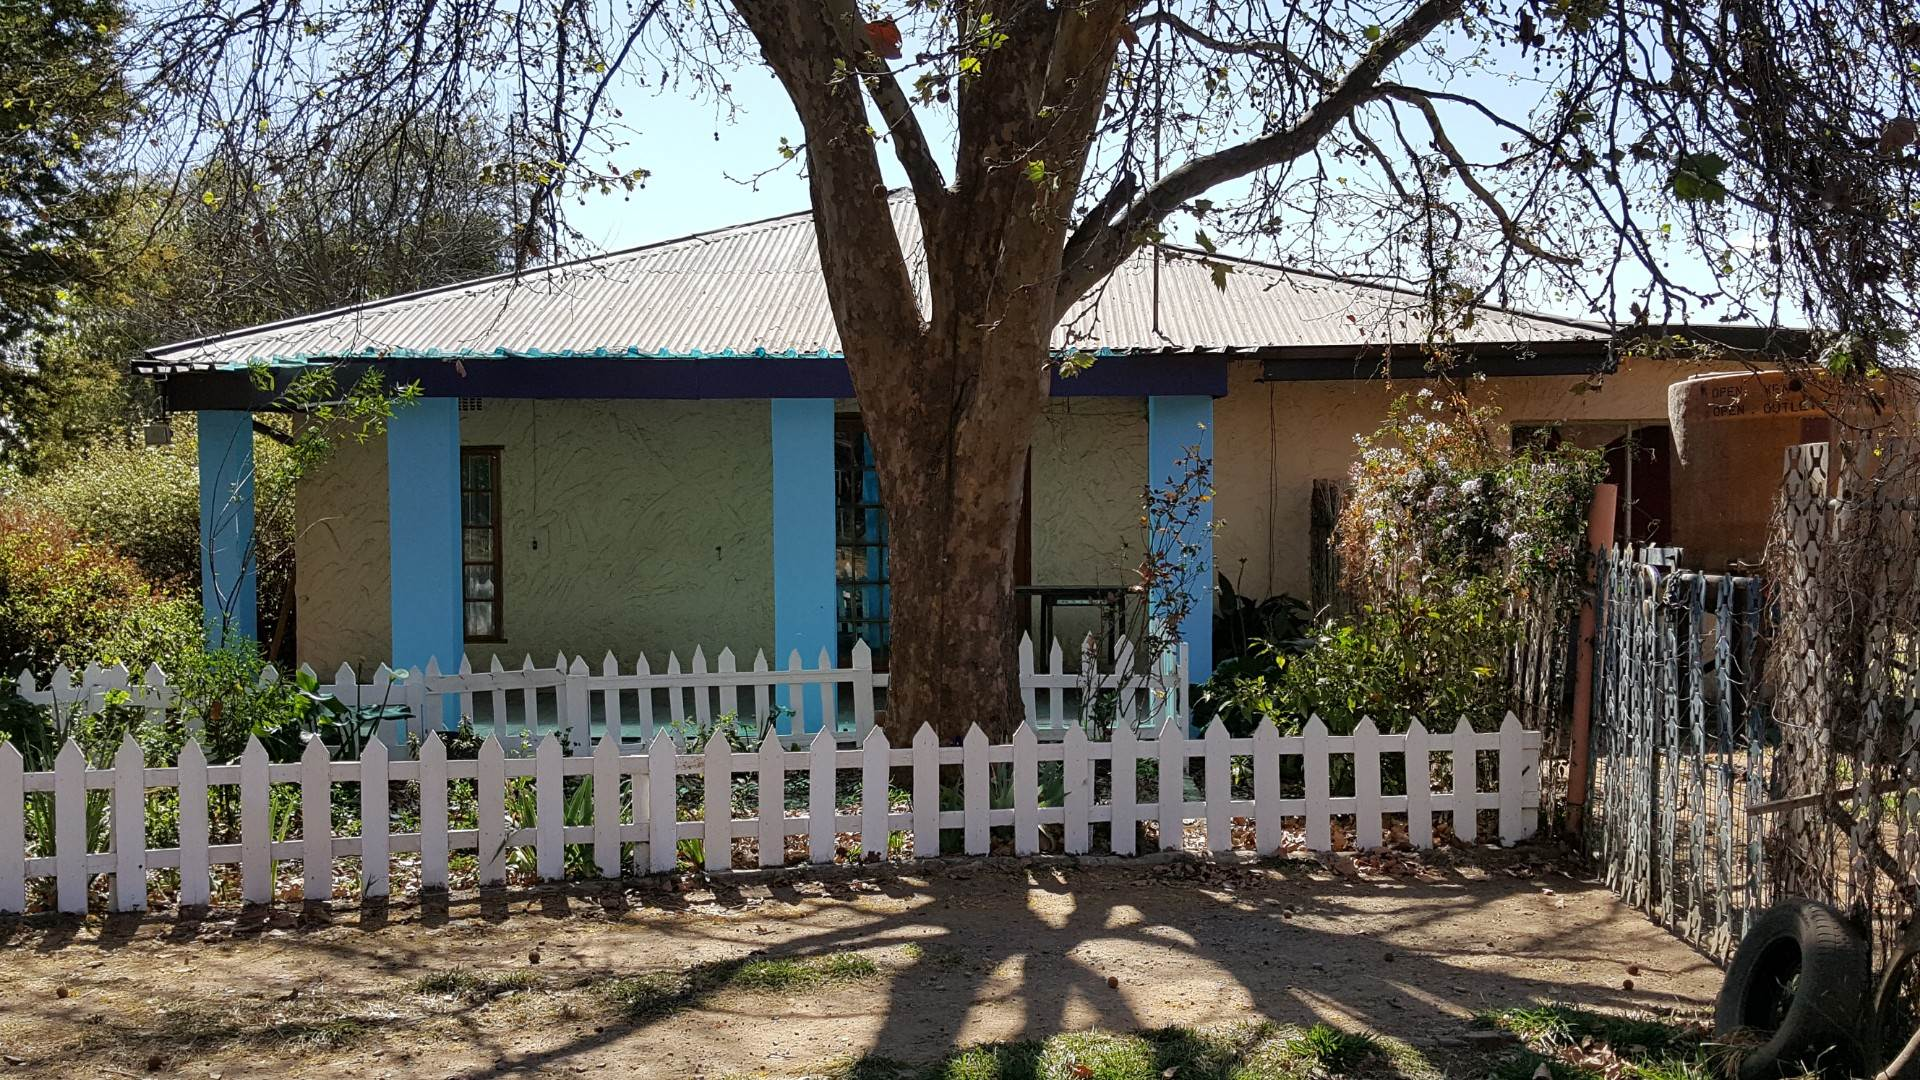 3 BedroomVacant Land Agricultural For Sale In Sundra